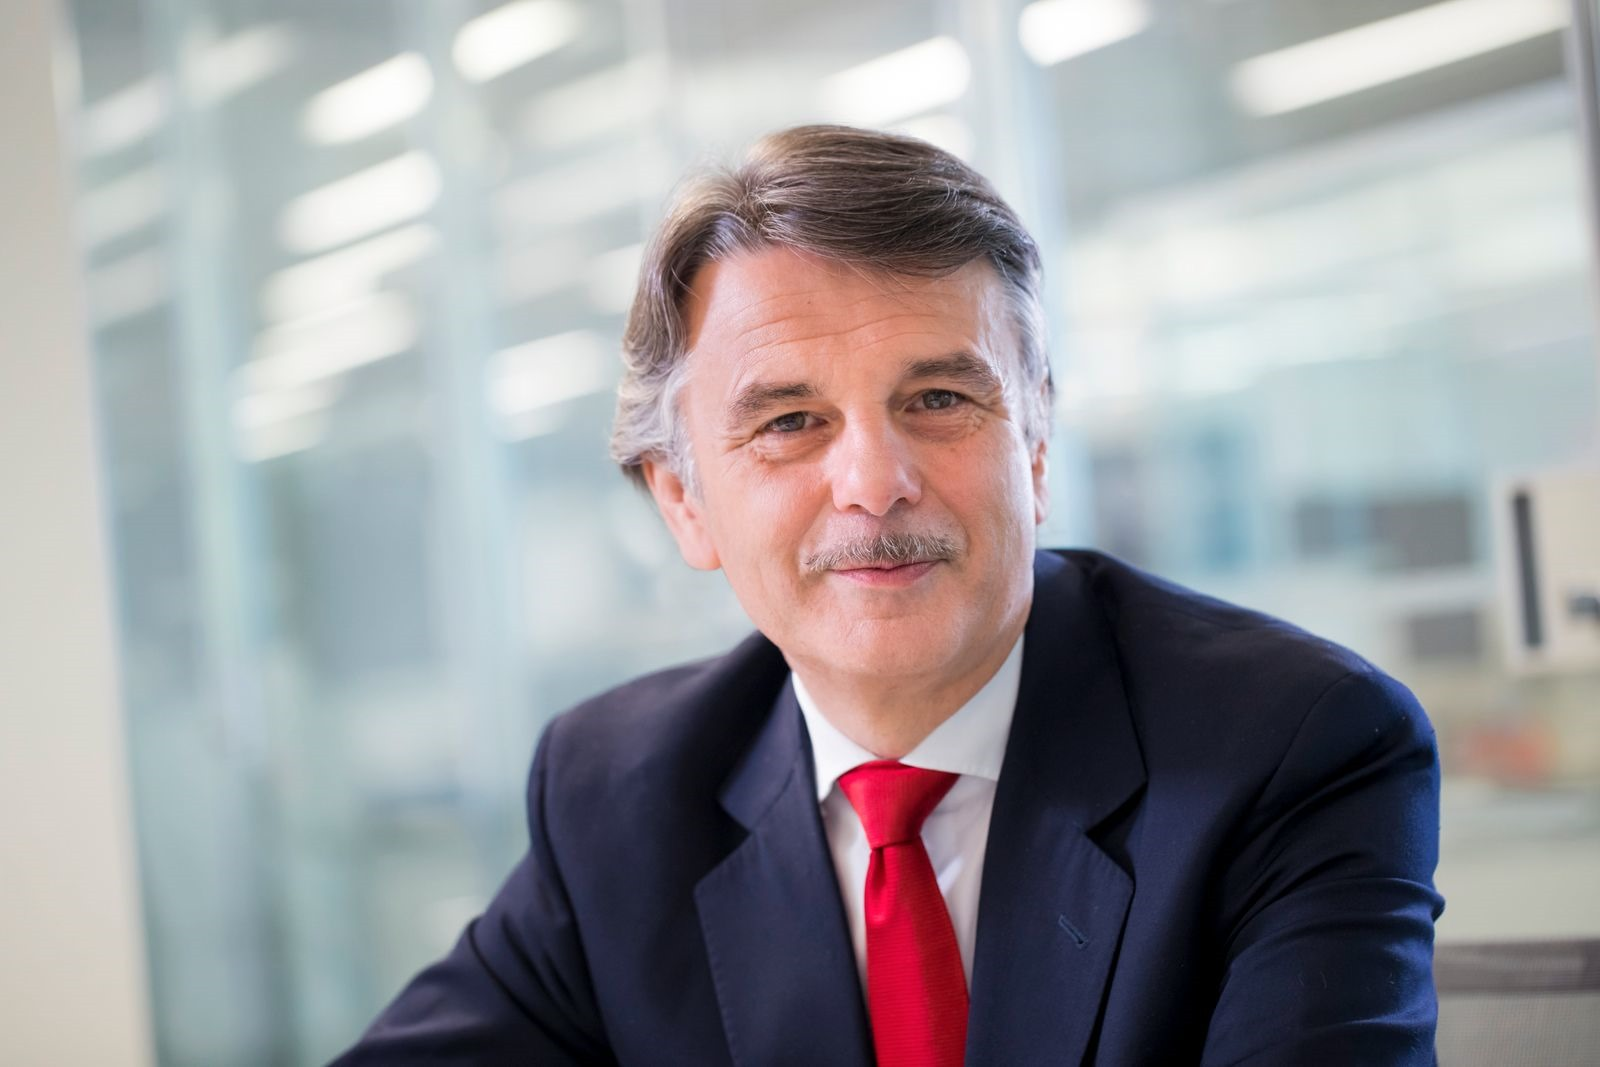 Prof Sir Ralf Speth now part of TVS Board of Directors